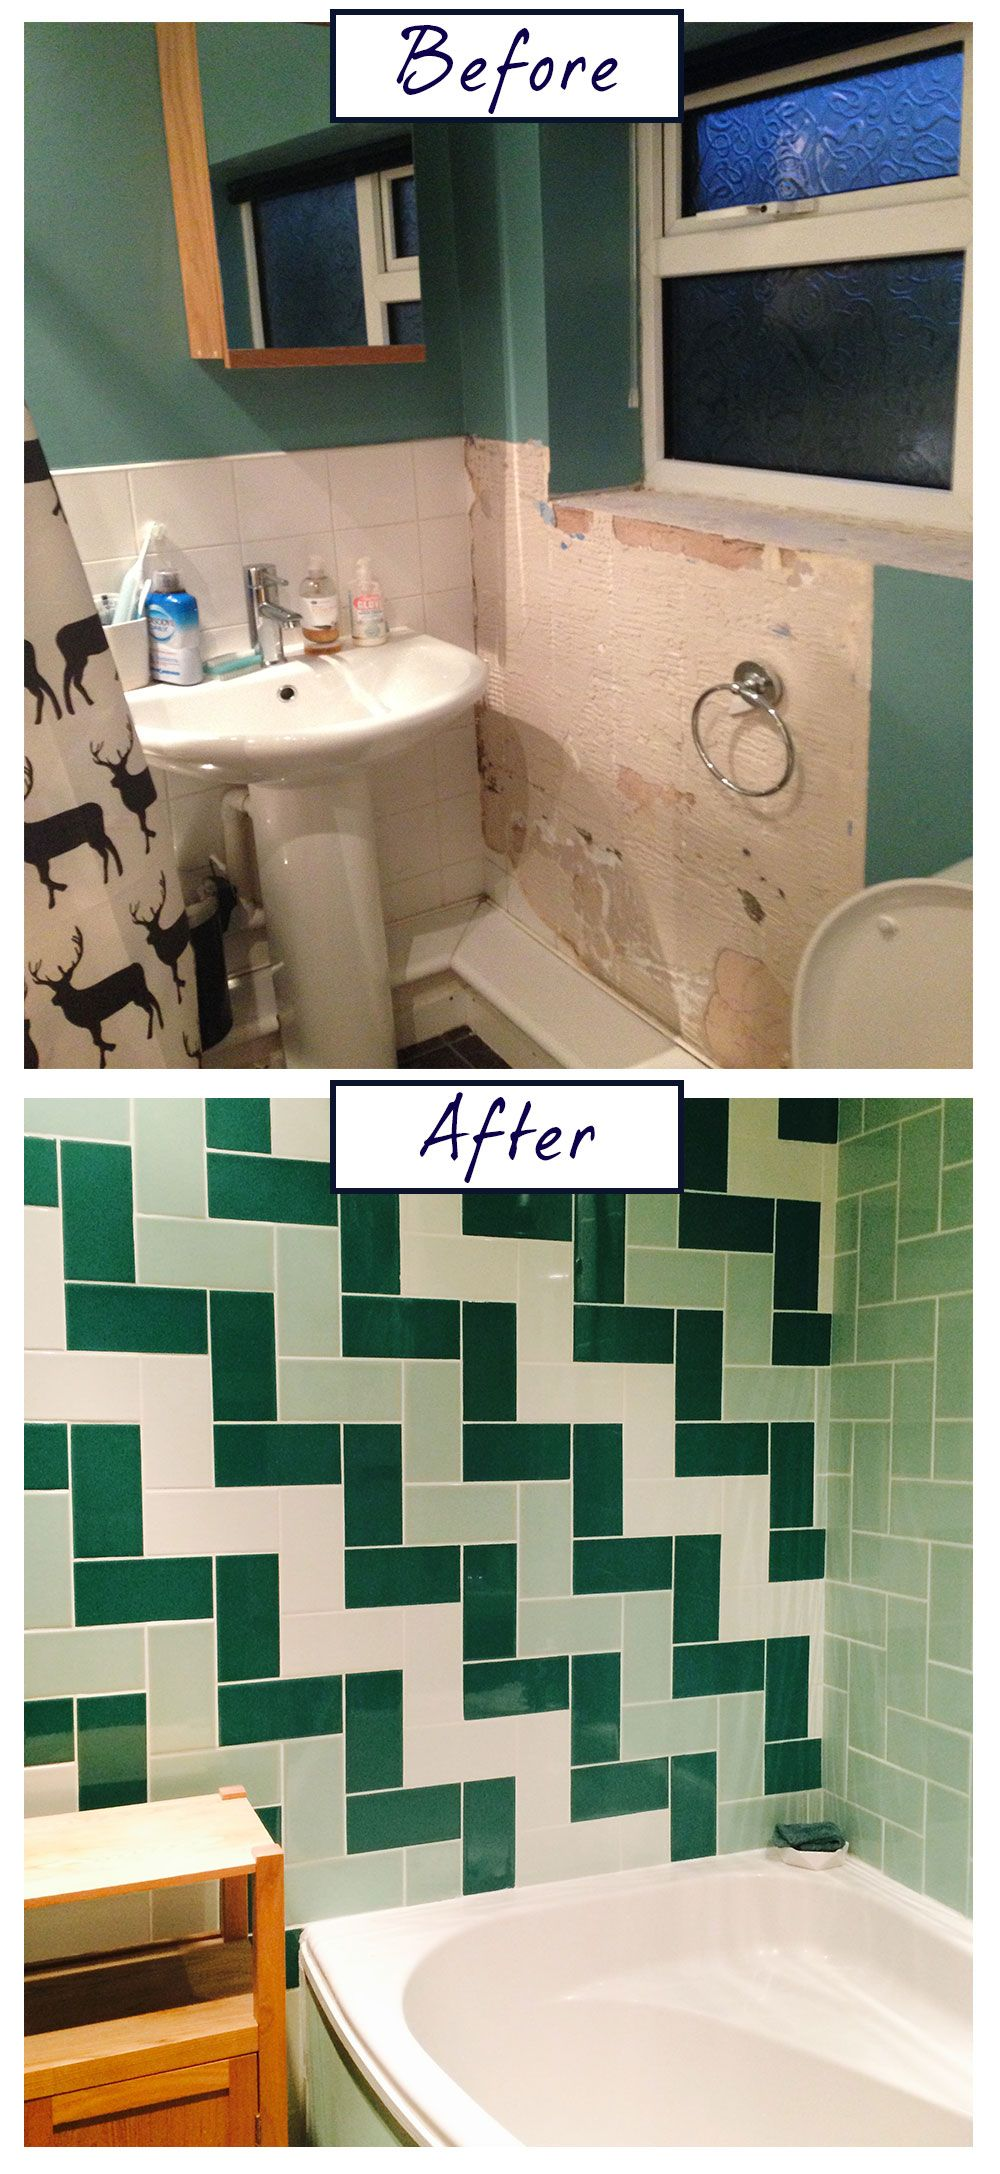 Nicola clark got creative with green creating a striking herringbone antique smooth crackle metro tiles dailygadgetfo Gallery